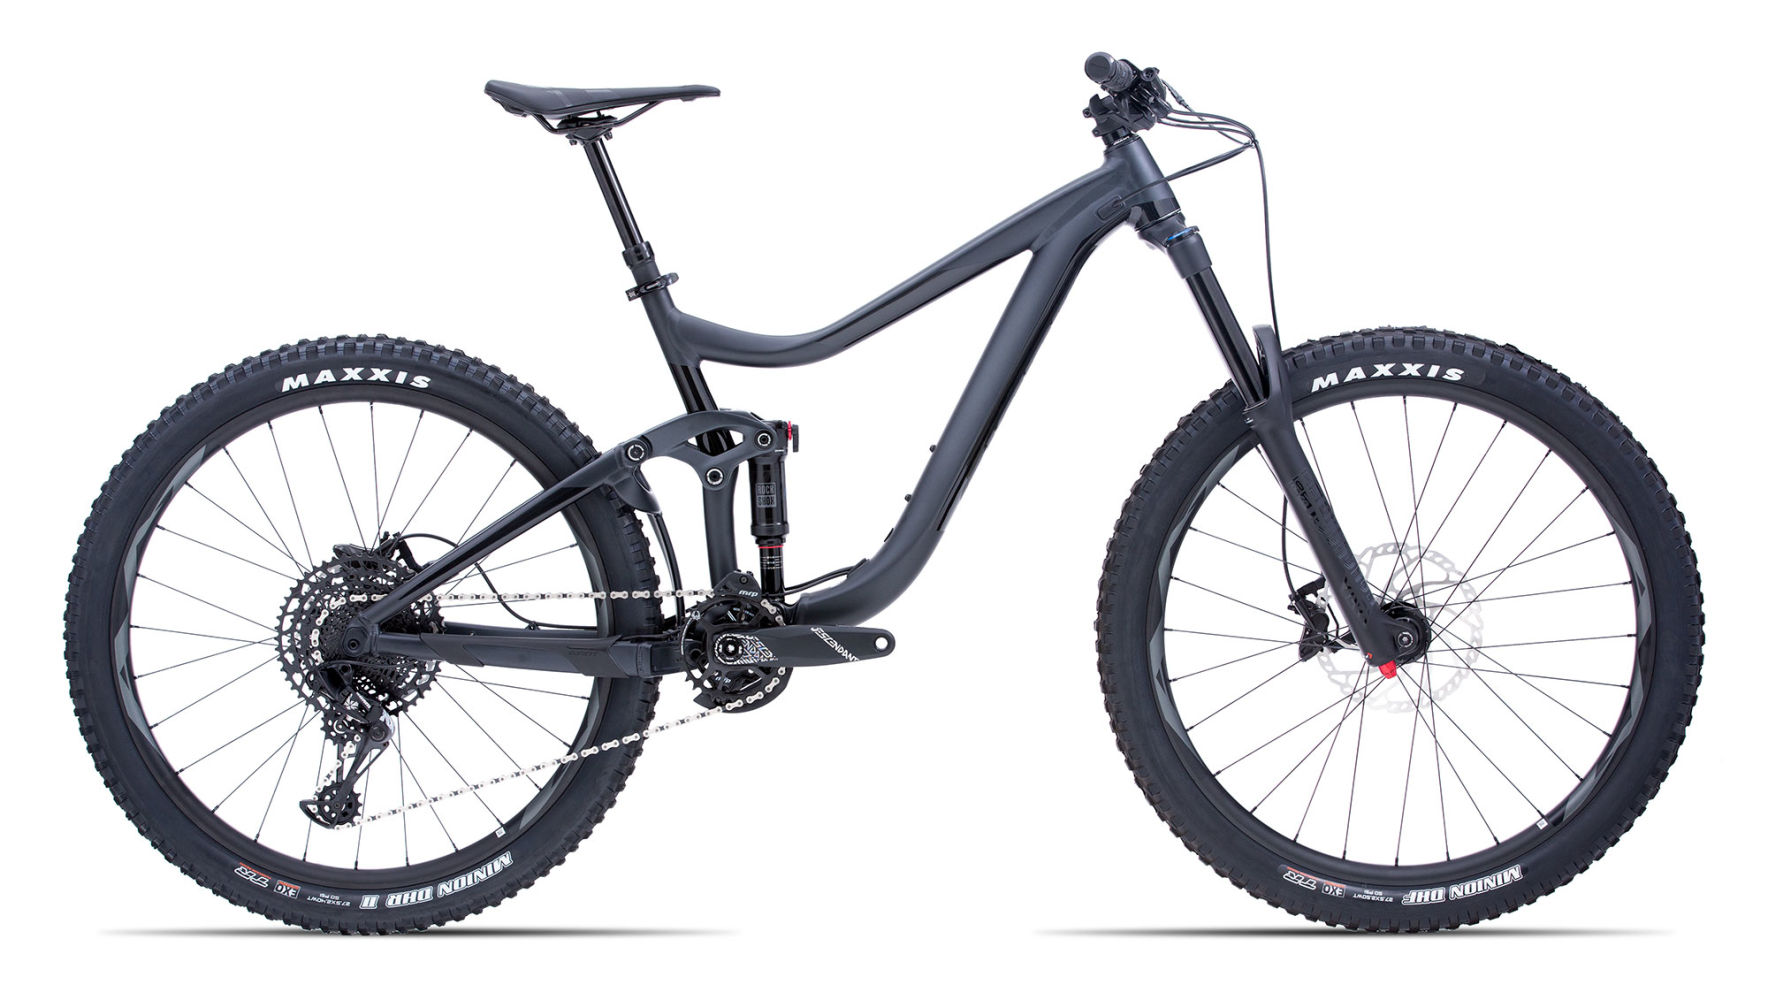 Giant enduro full suspension bike, 160mm travel, Maestro damping frame